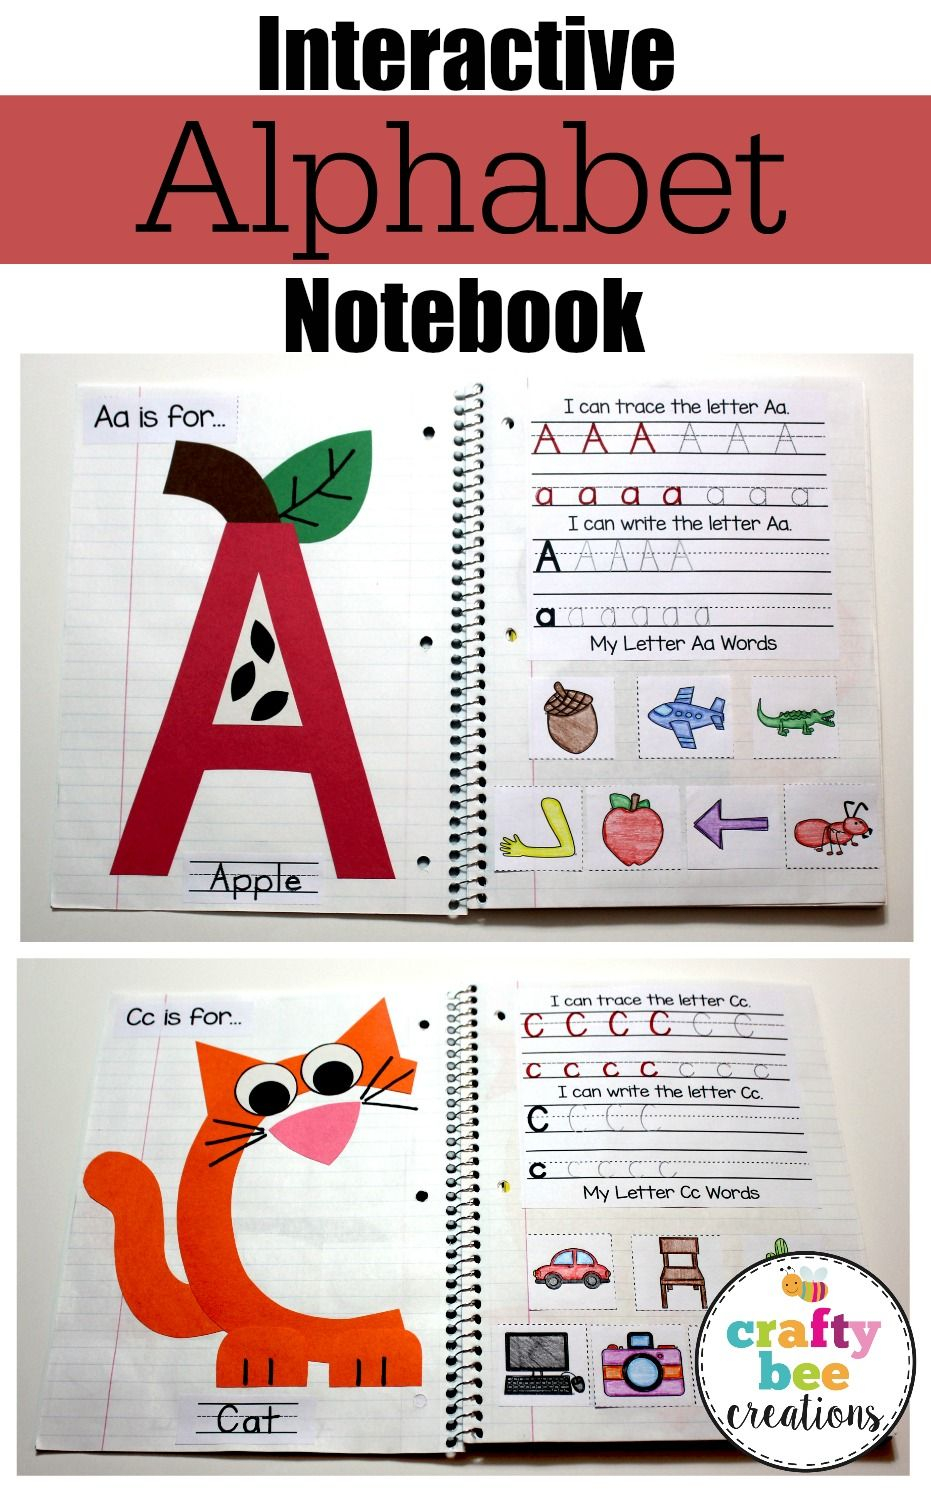 Interactive Alphabet Notebook (Uppercase Alphabet Letters for Letter Tracing Interactive